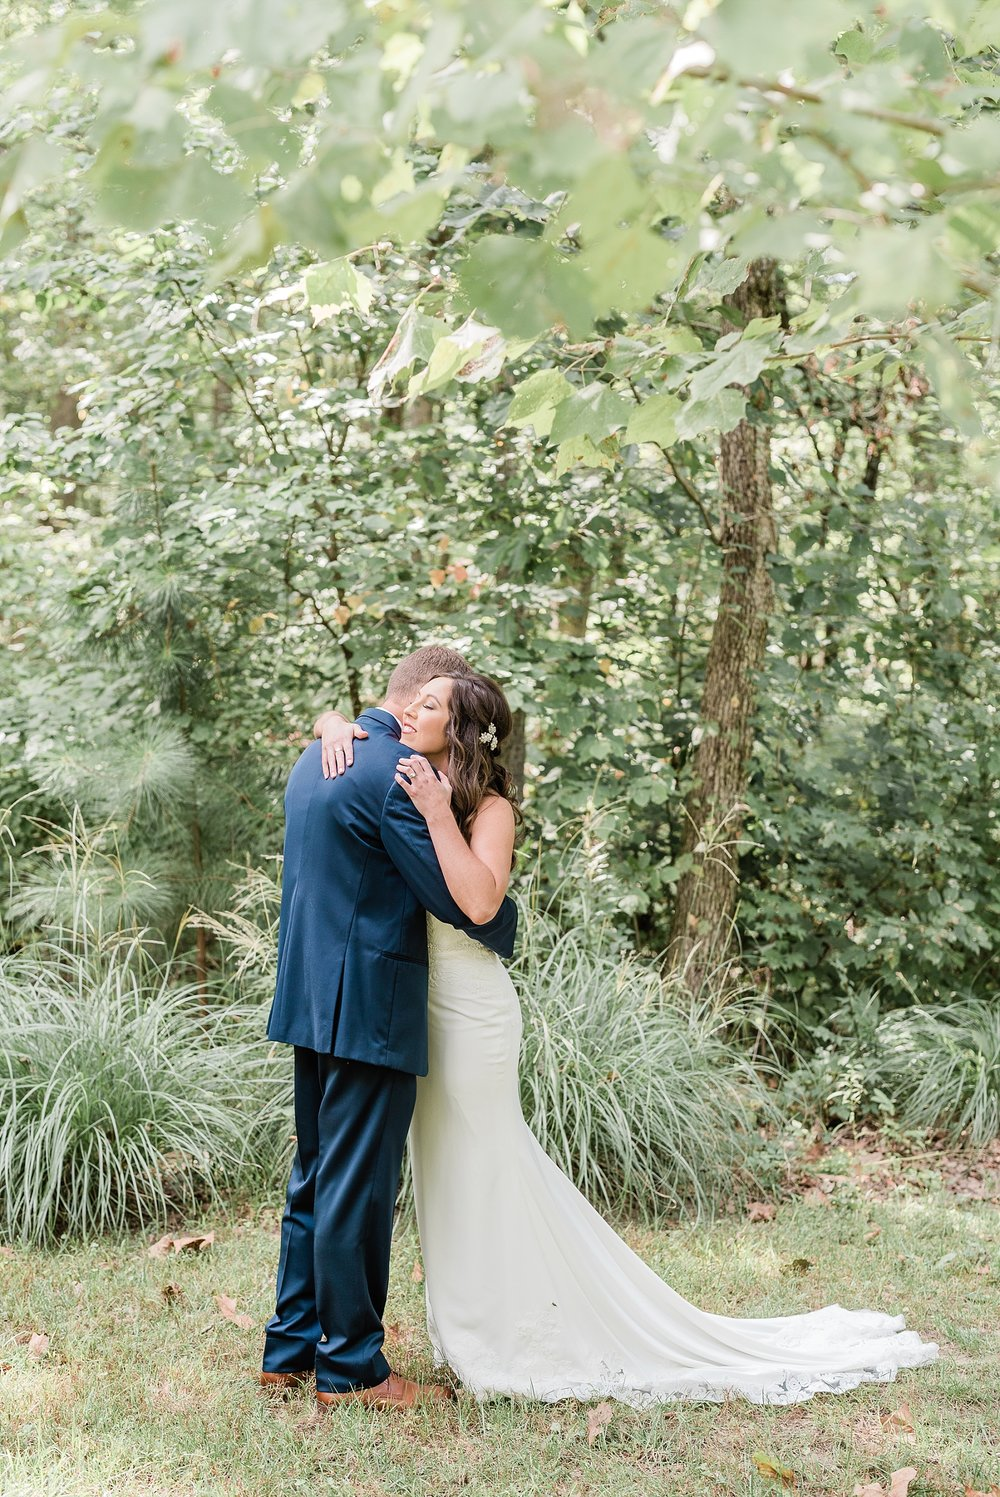 Romantic Summer Sunset Wedding Ceremony at Little Piney Lodge St. Louis Missouri by Kelsi Kliethermes Photography Fine Art Photographer_0032.jpg